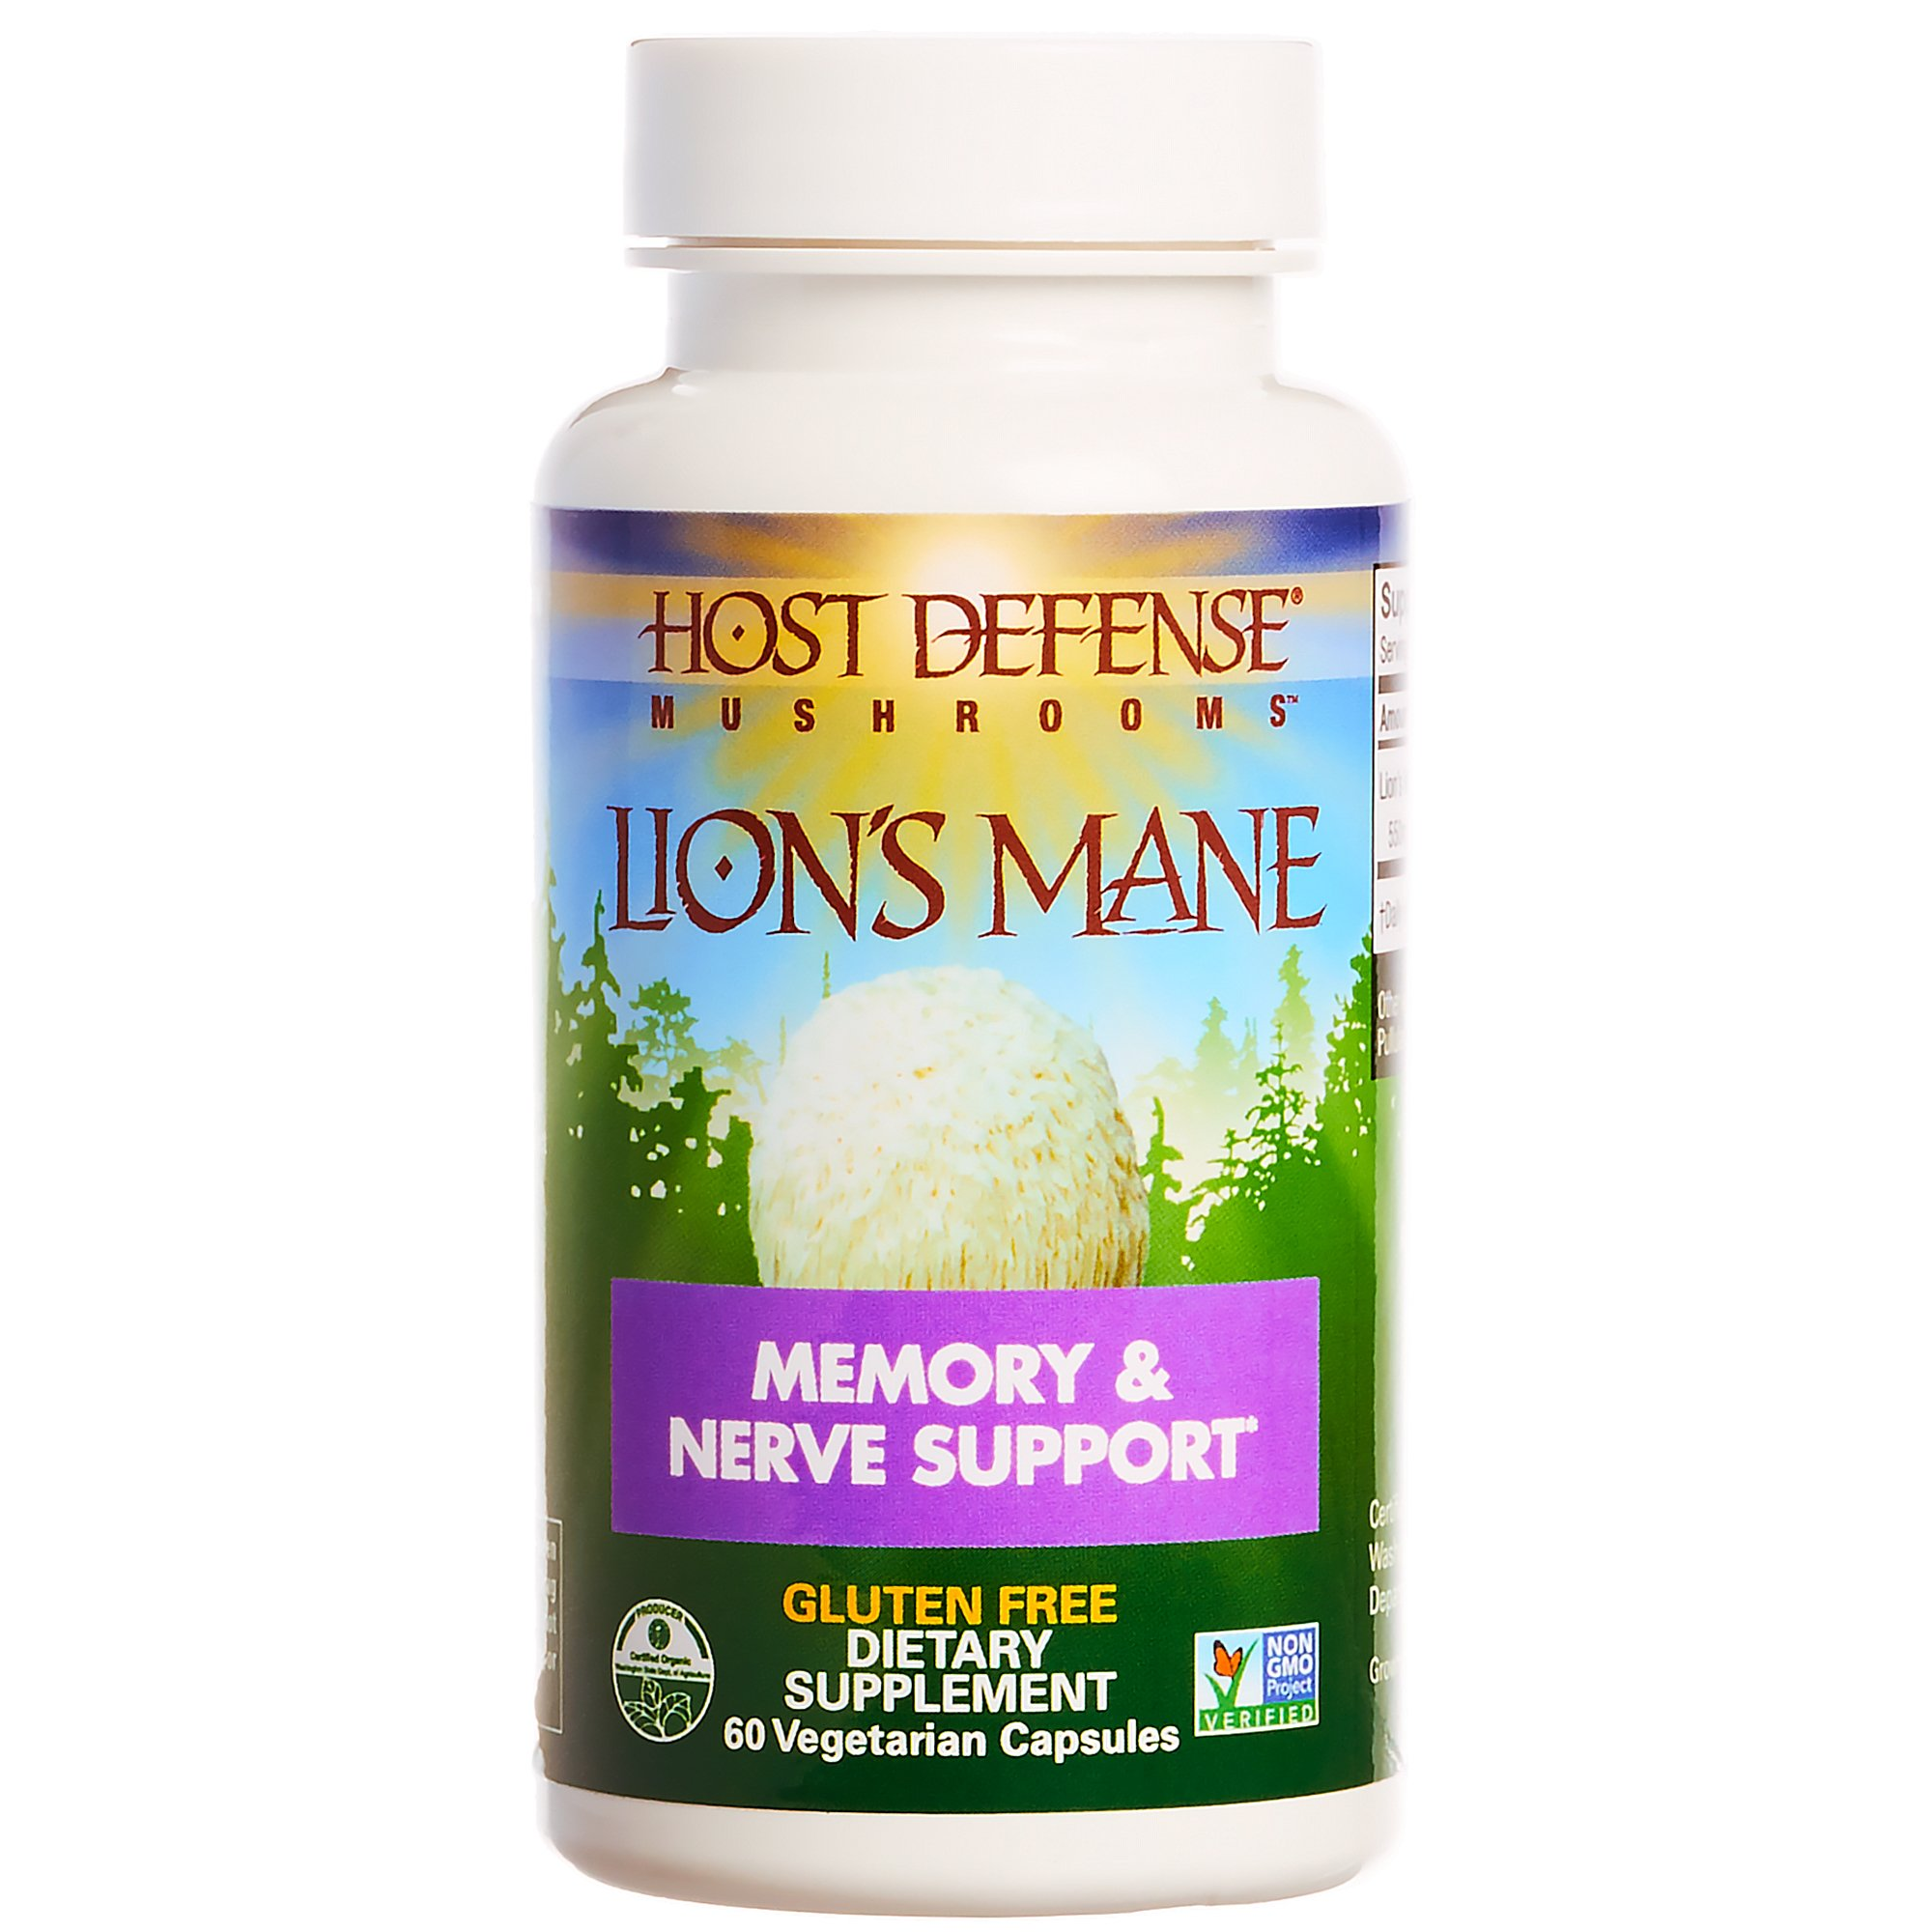 Host Defense - Lion's Mane Capsules, Mushroom Support for Memory and Nerves, 60 Count